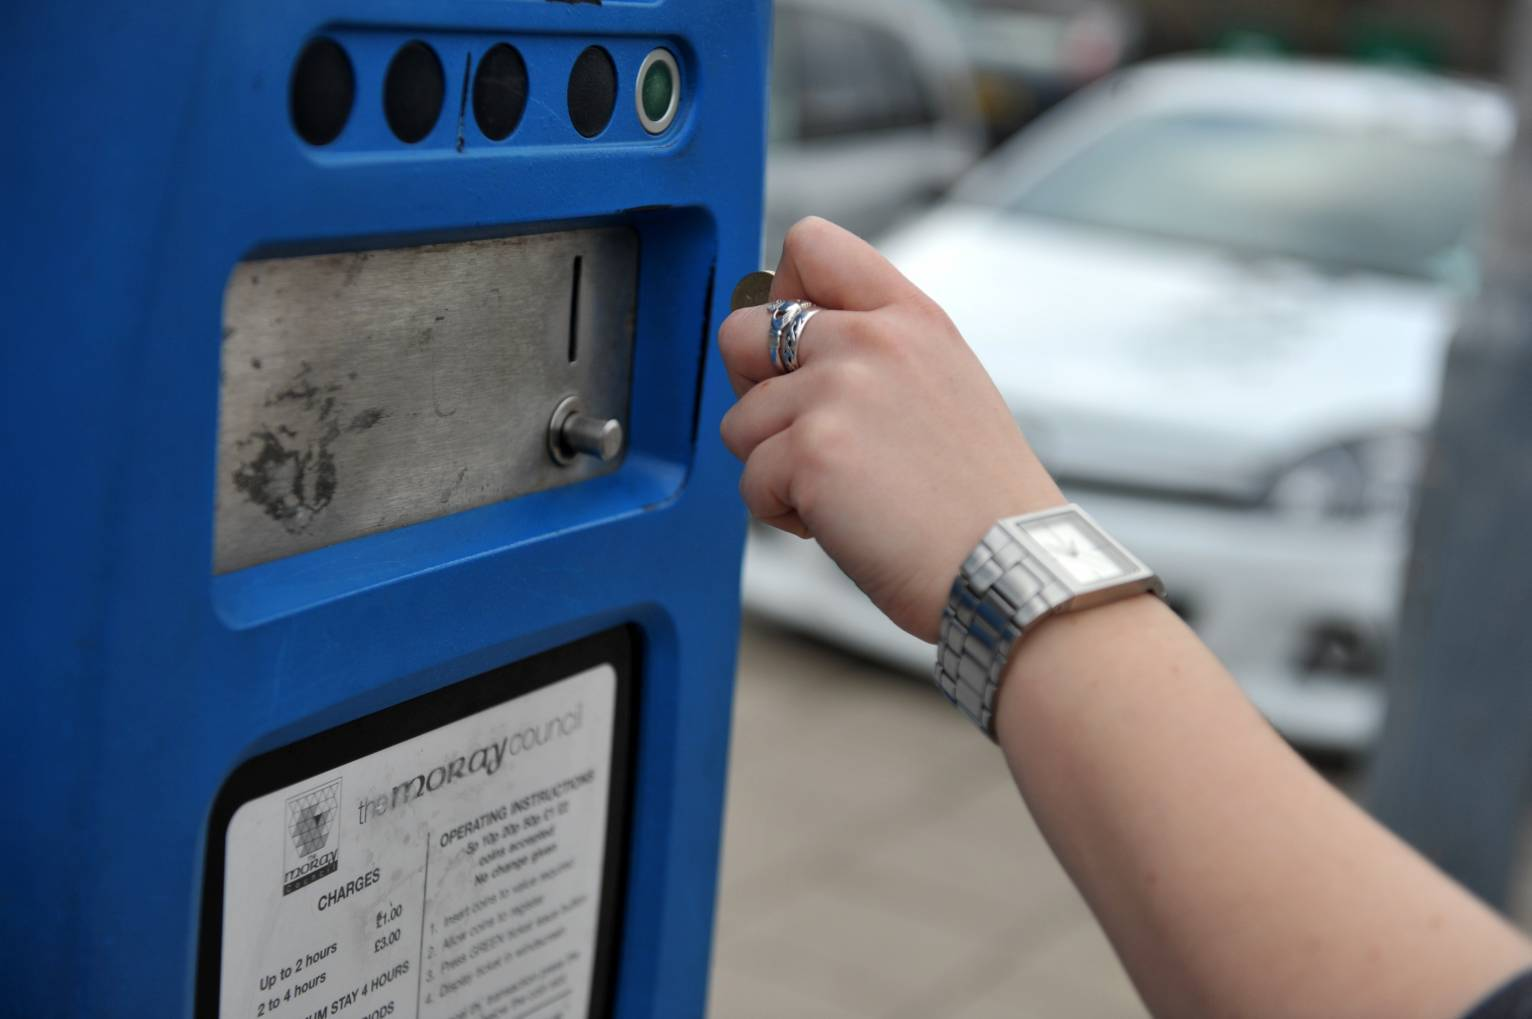 Residents are being asked to share their thoughts on changes to off-street parking